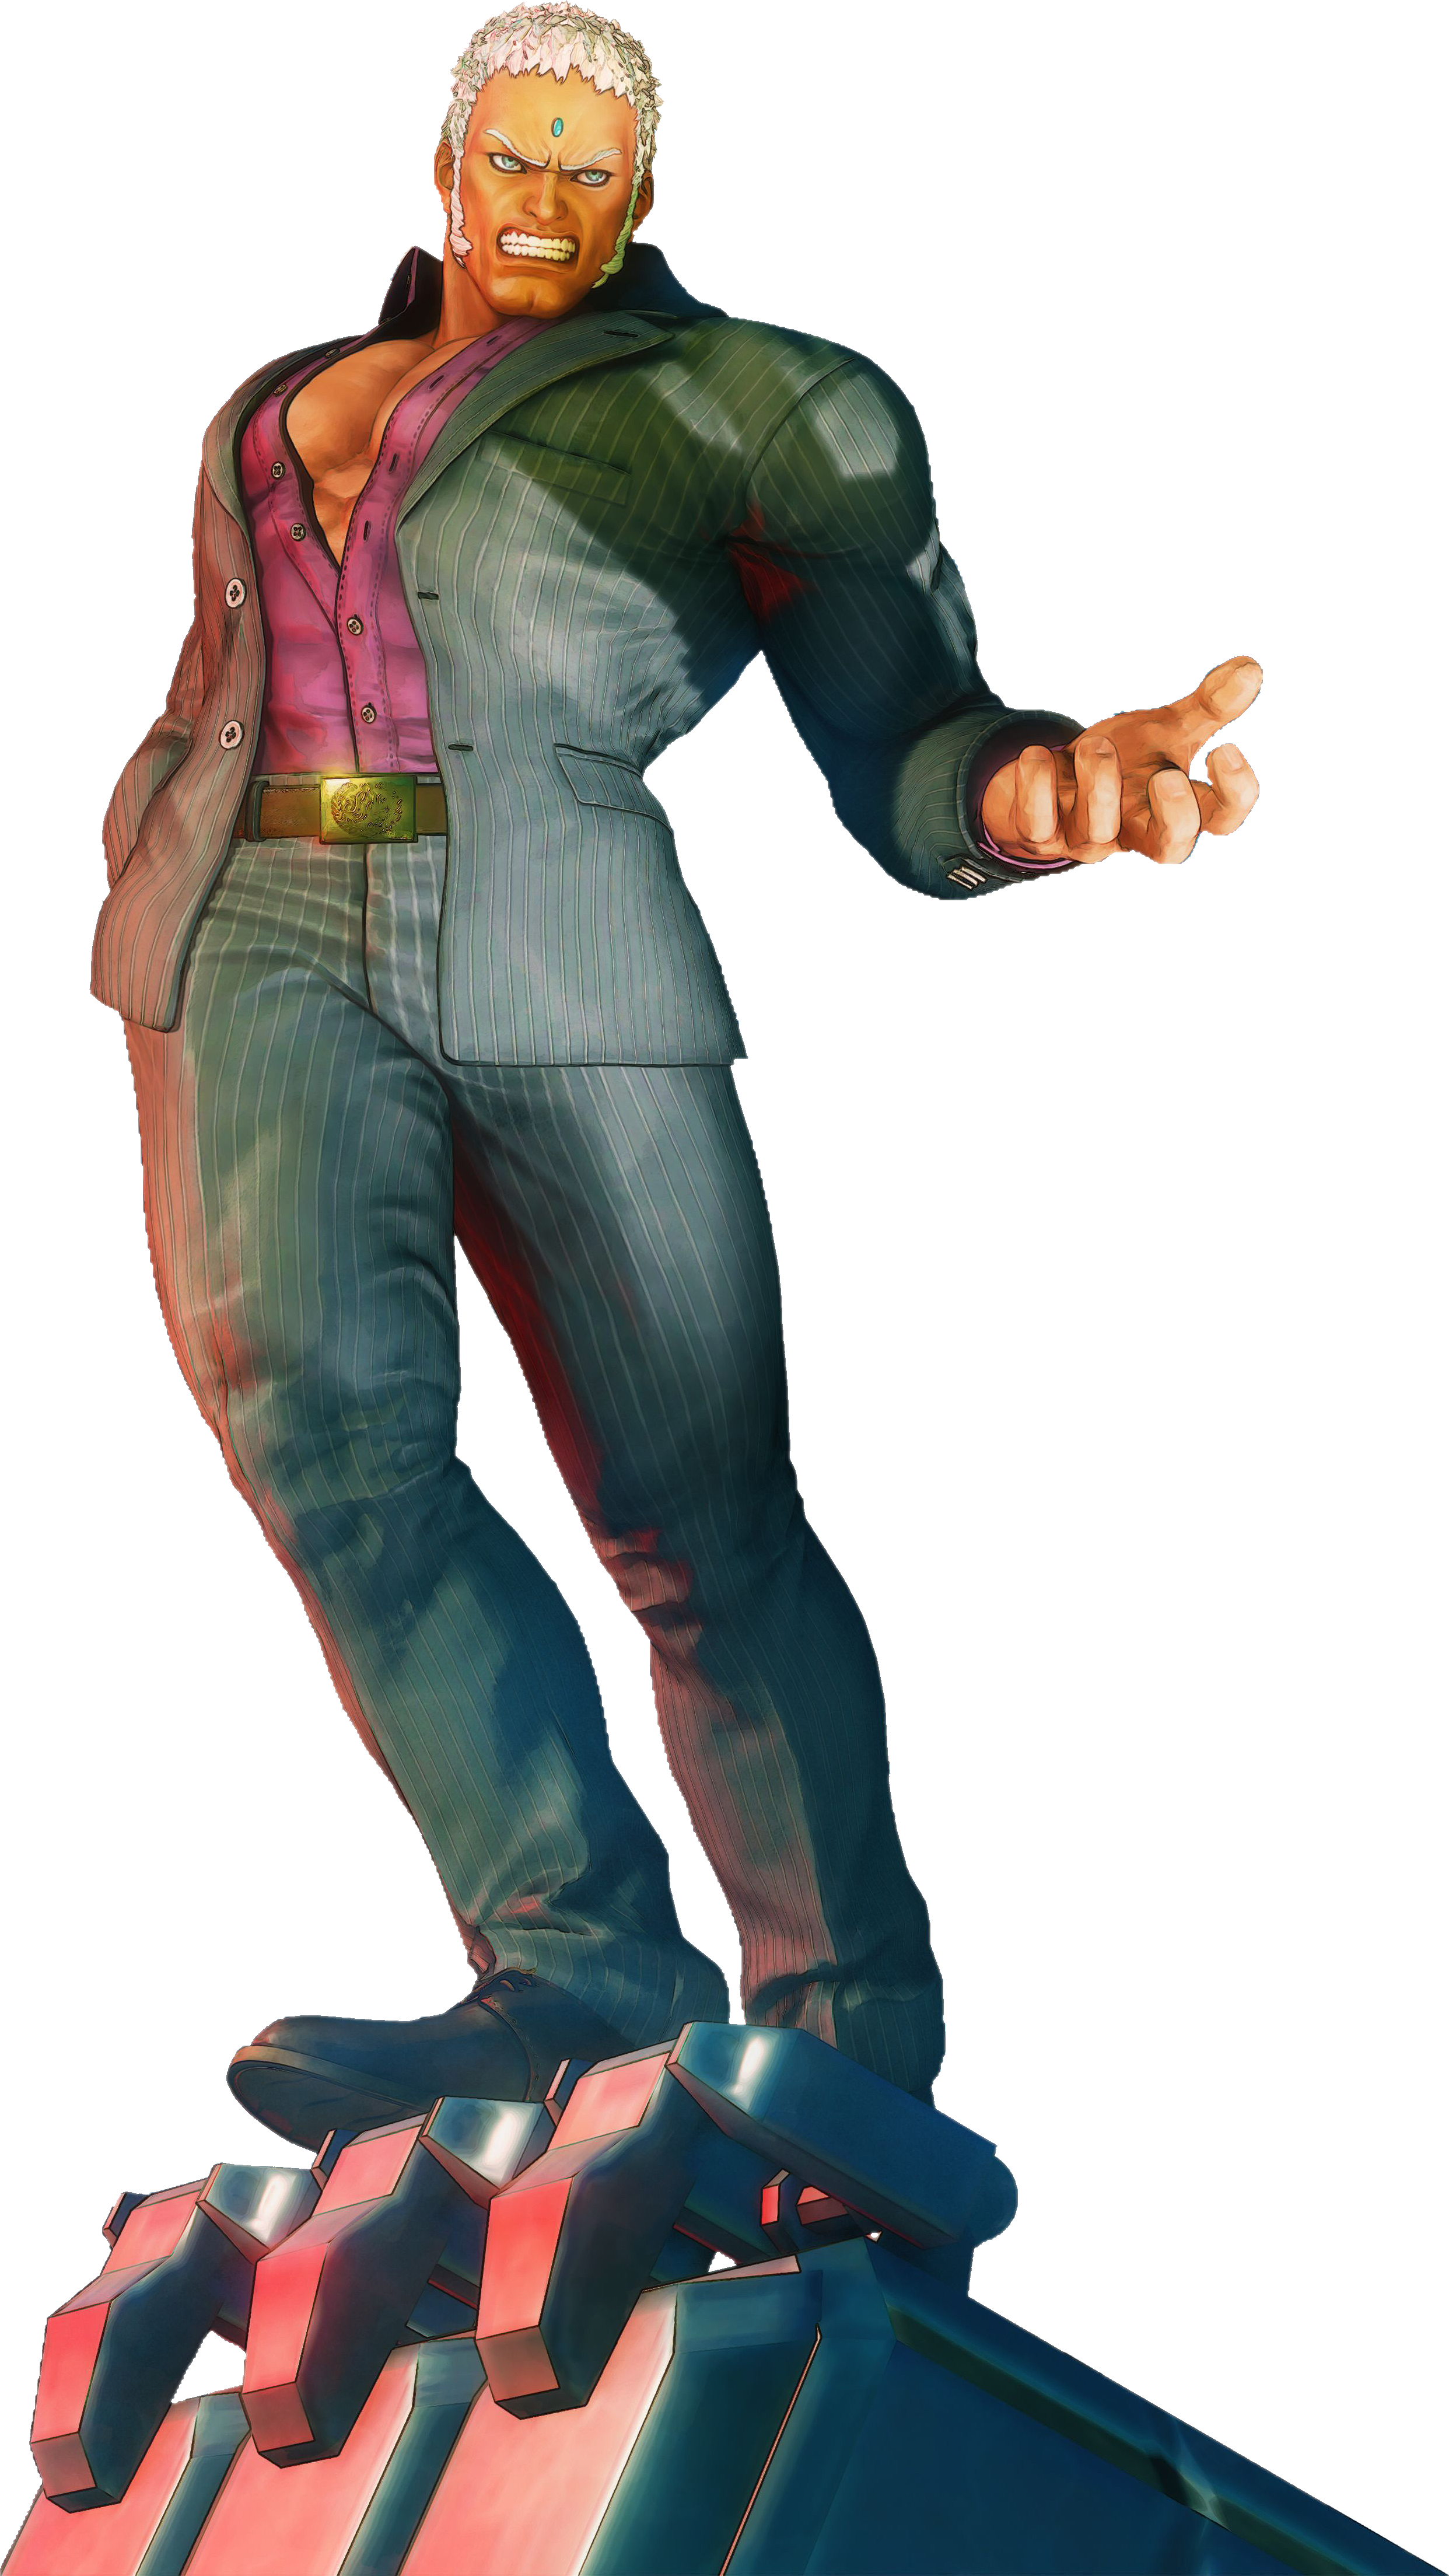 Street Fighter 5 - Urien by hes6789 on DeviantArt